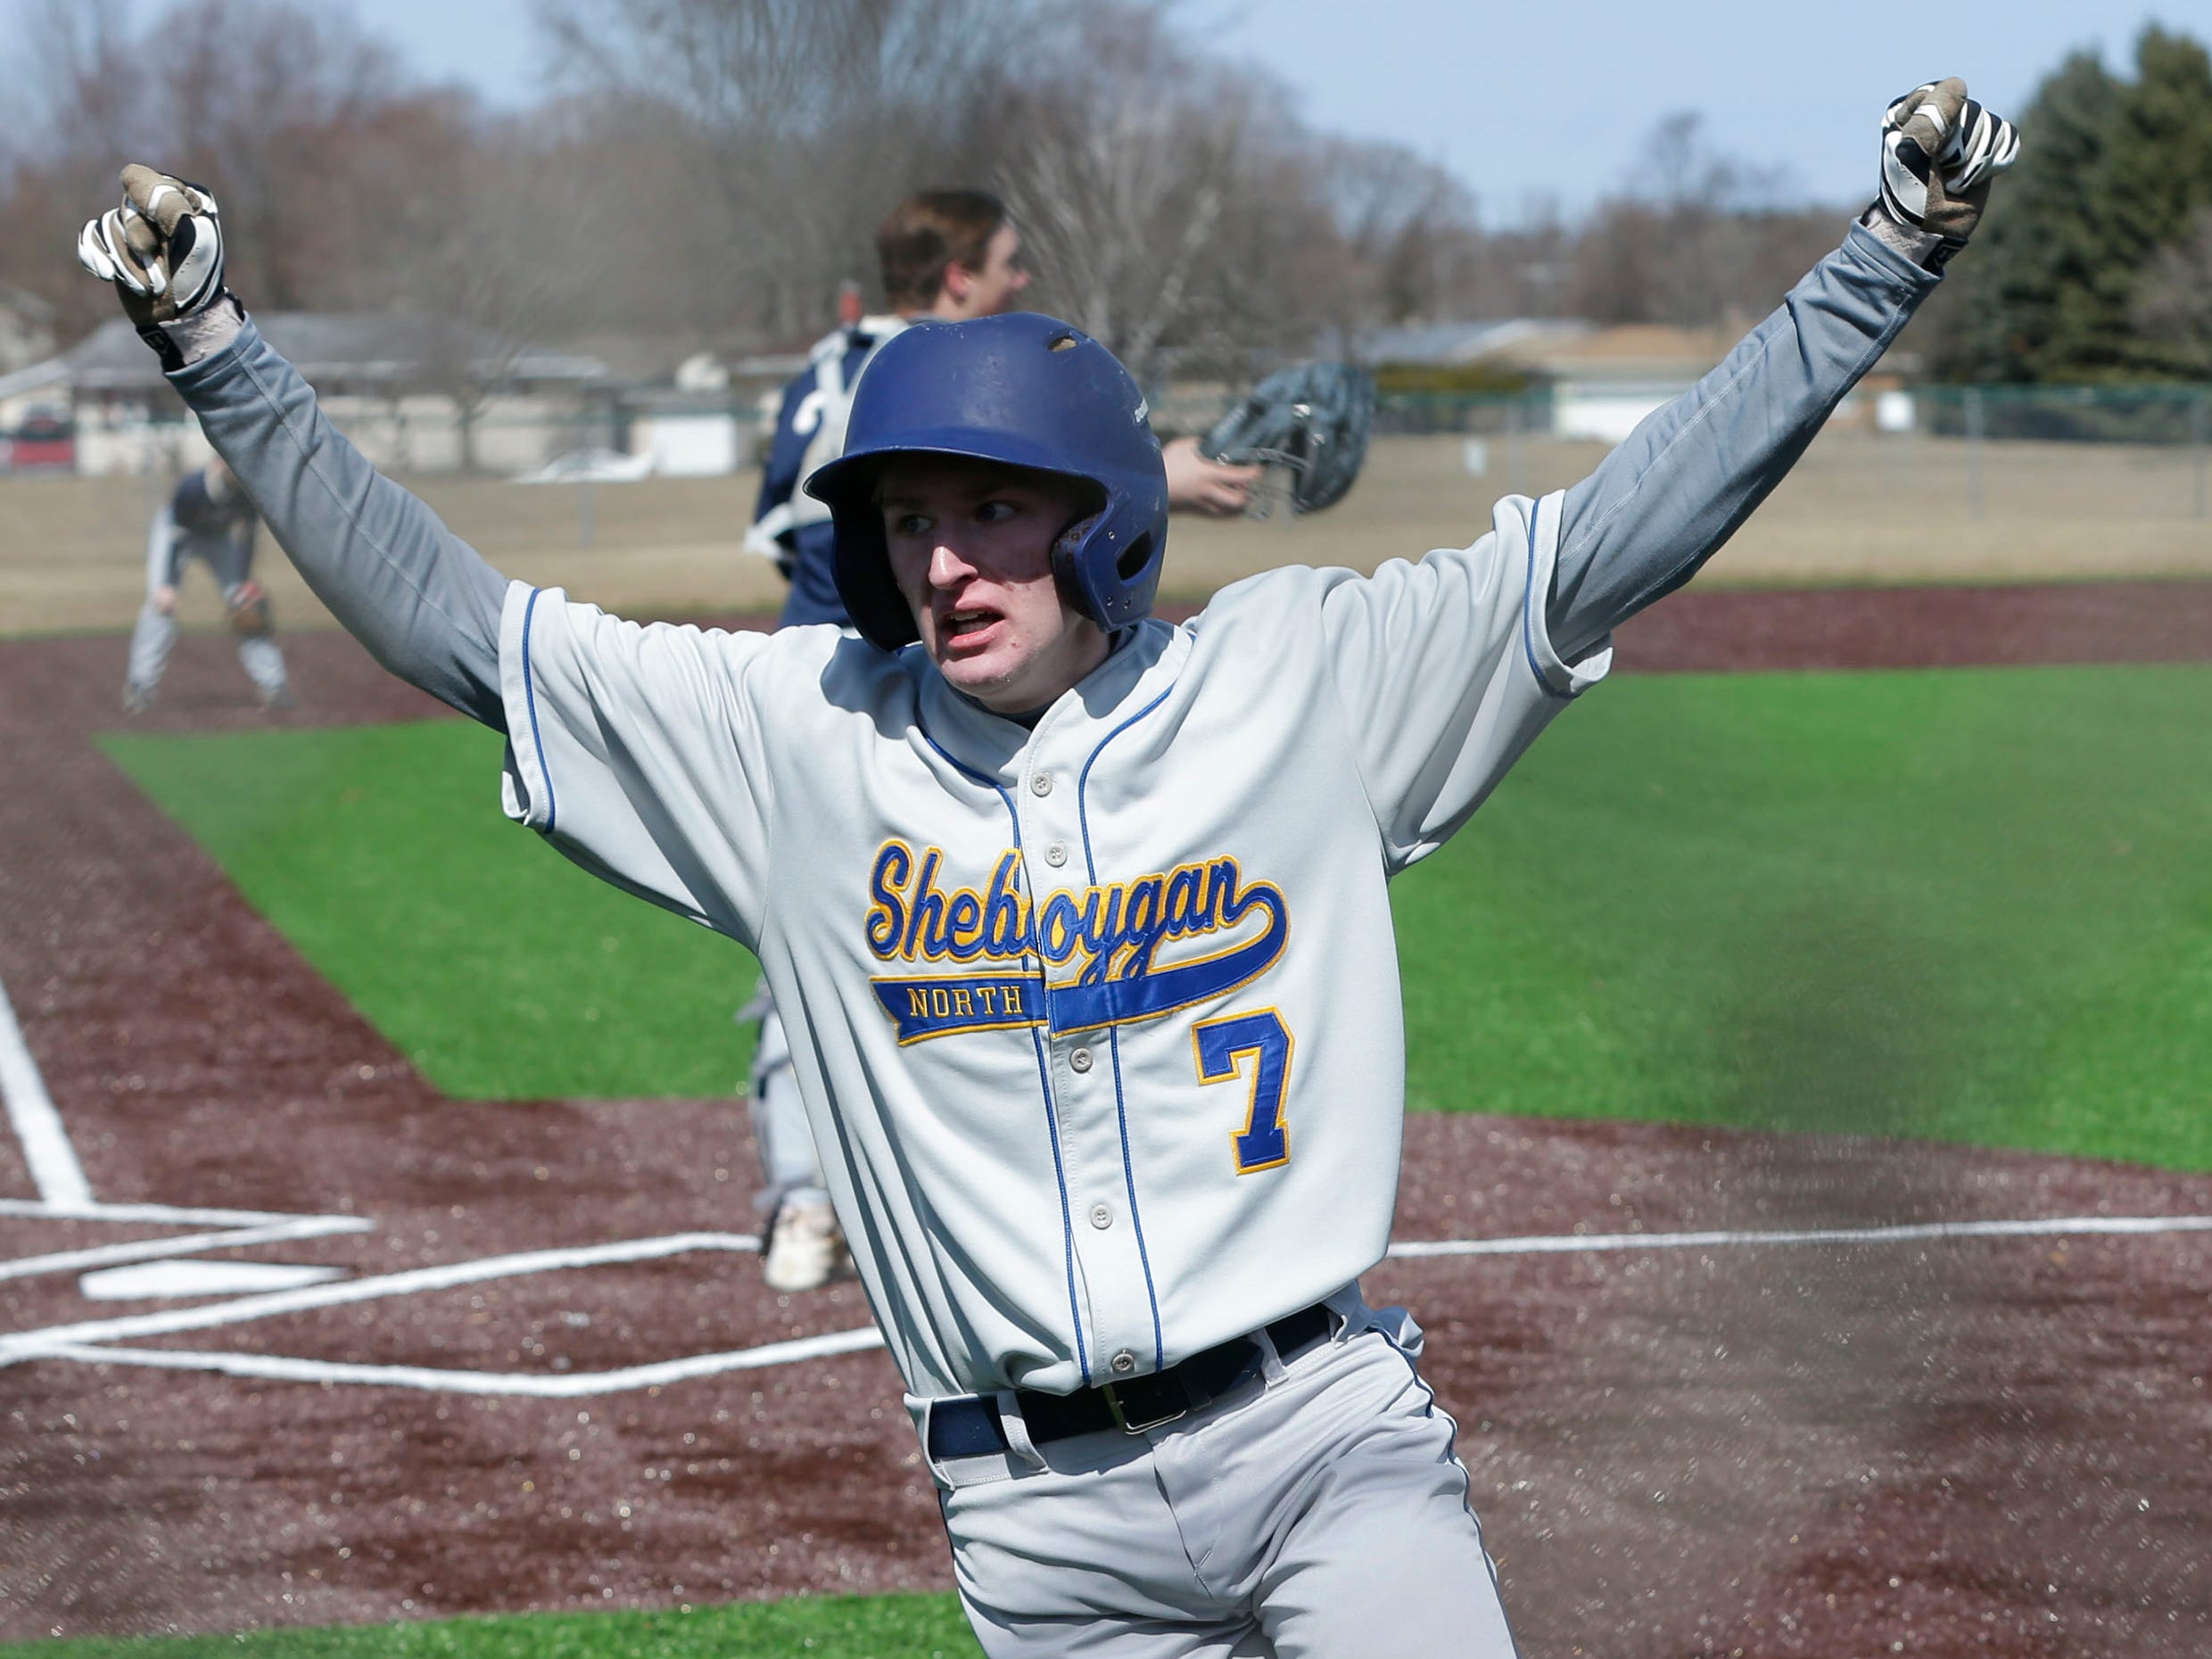 Sheboygan North's Brent Widder (7) reacts to making the game winning run against Appleton North, Friday, March 29, 2019, at the Field of Dreams complex in Sheboygan, Wis.